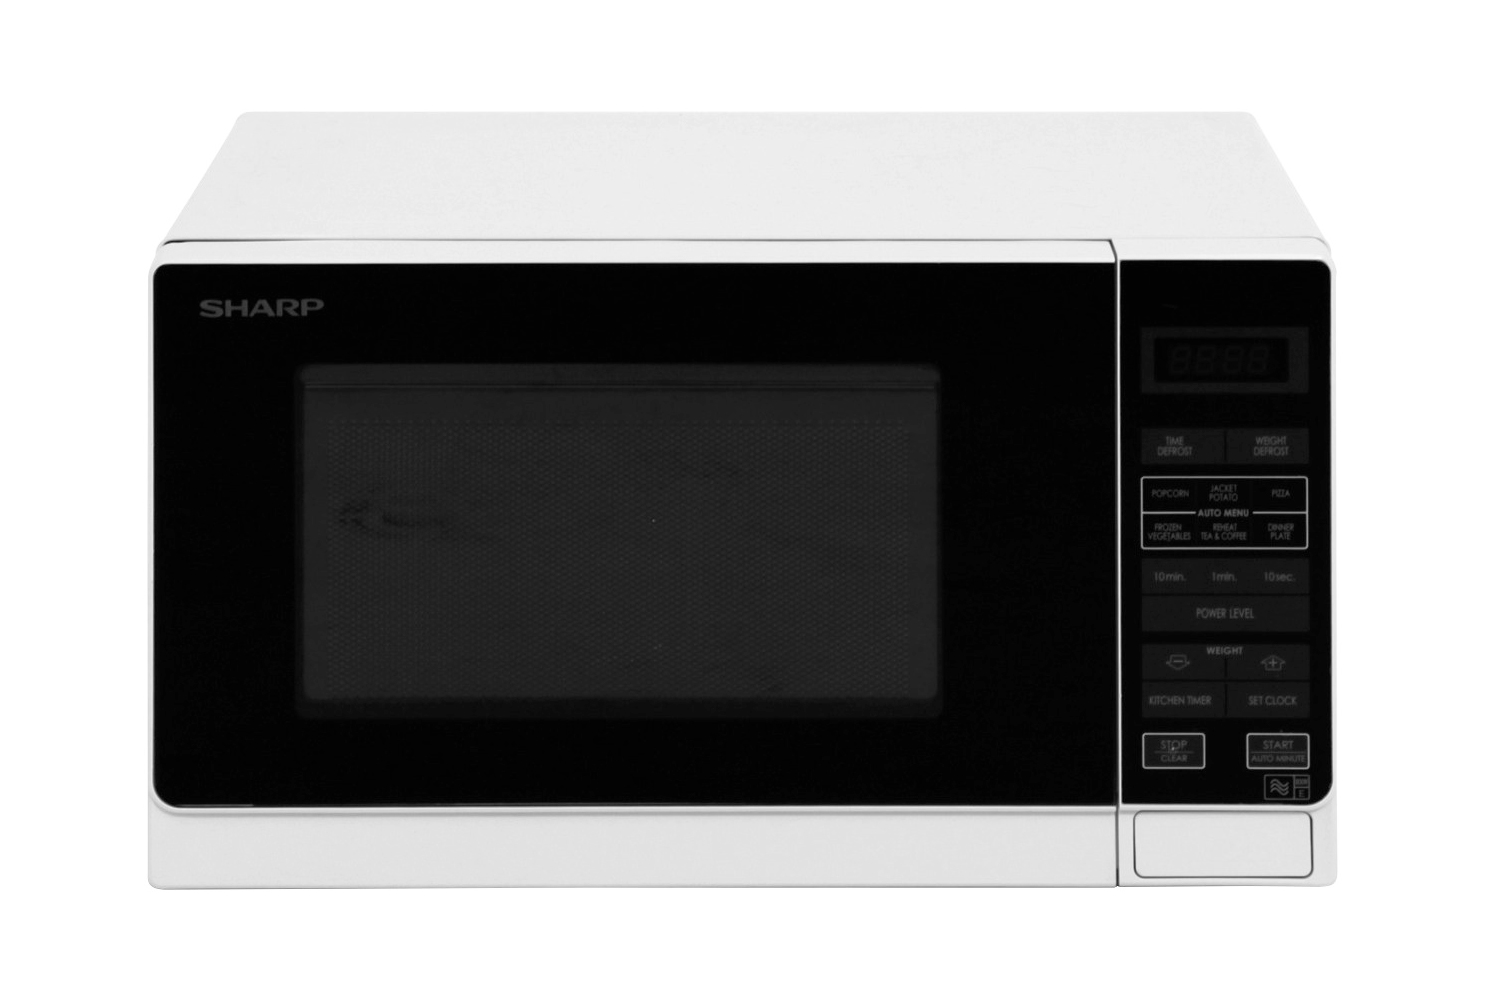 sharp compact size microwave oven